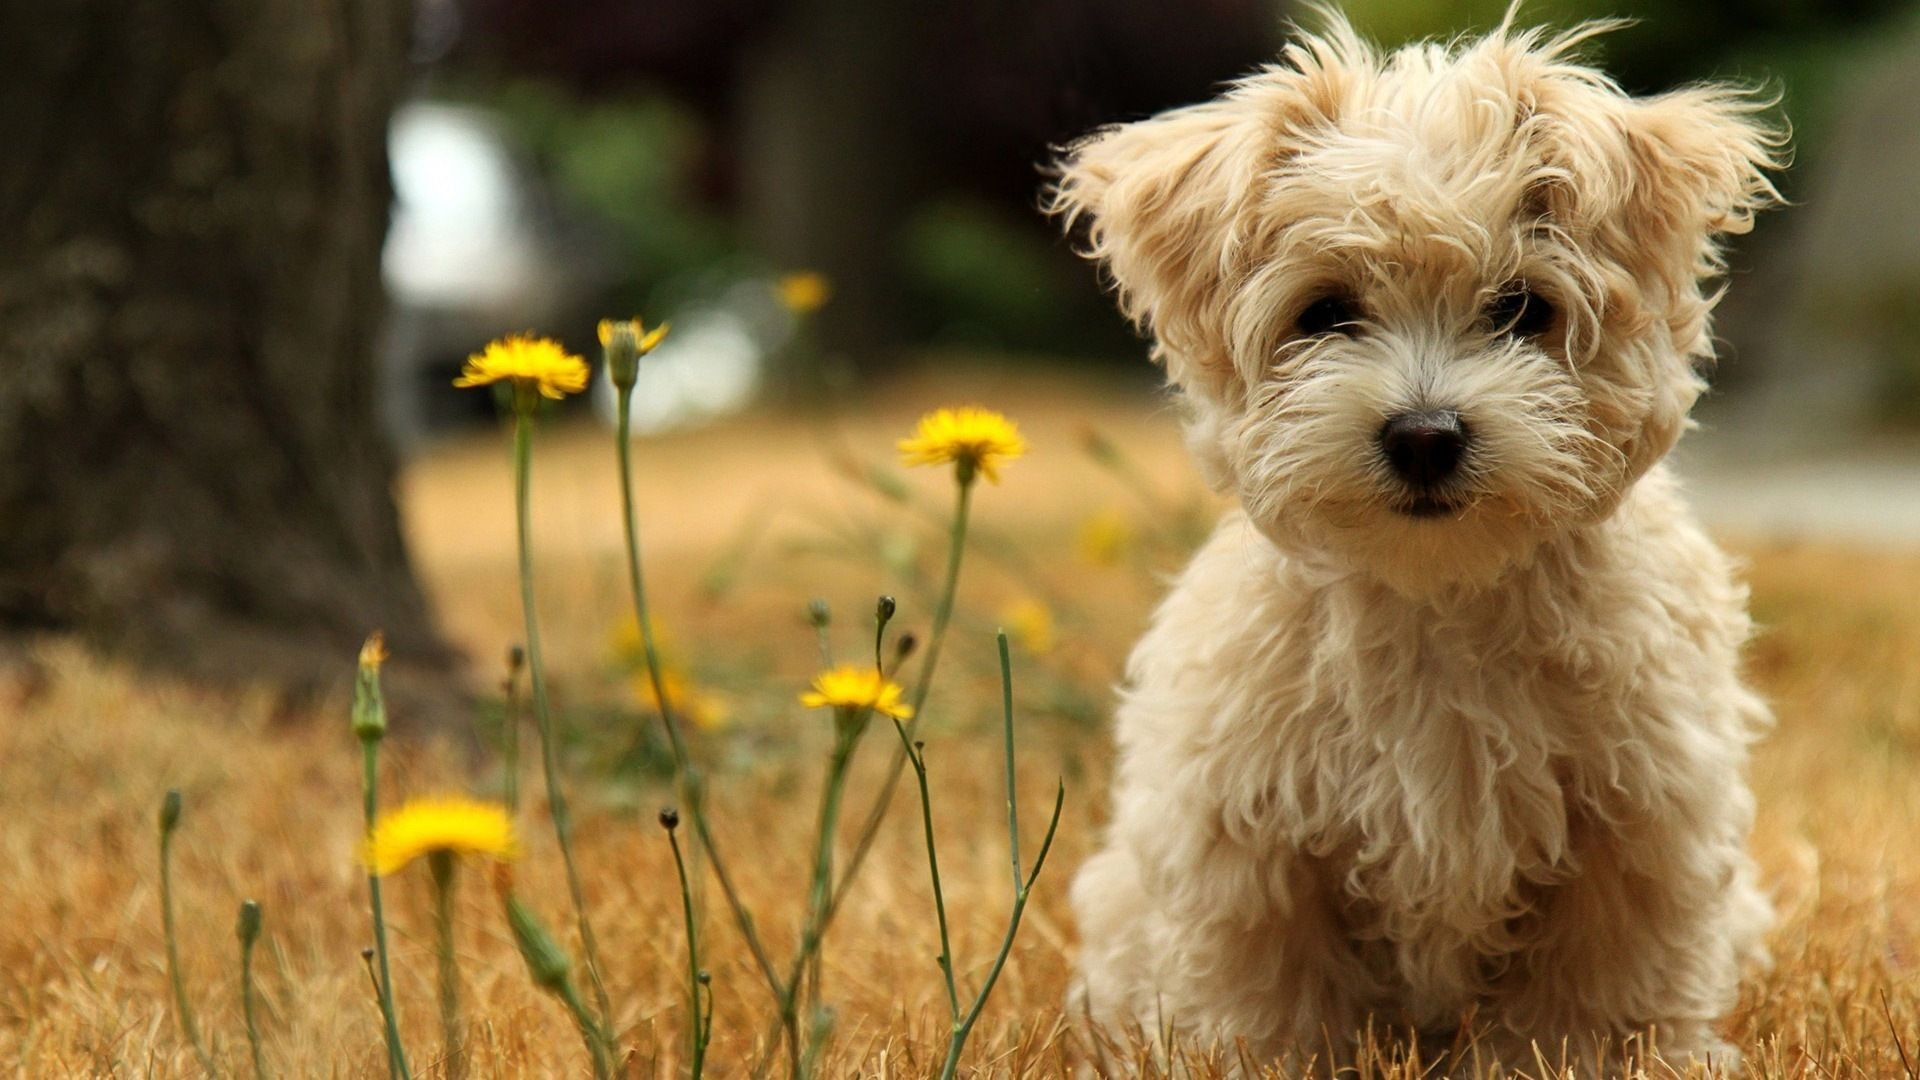 cute animal wallpapers for